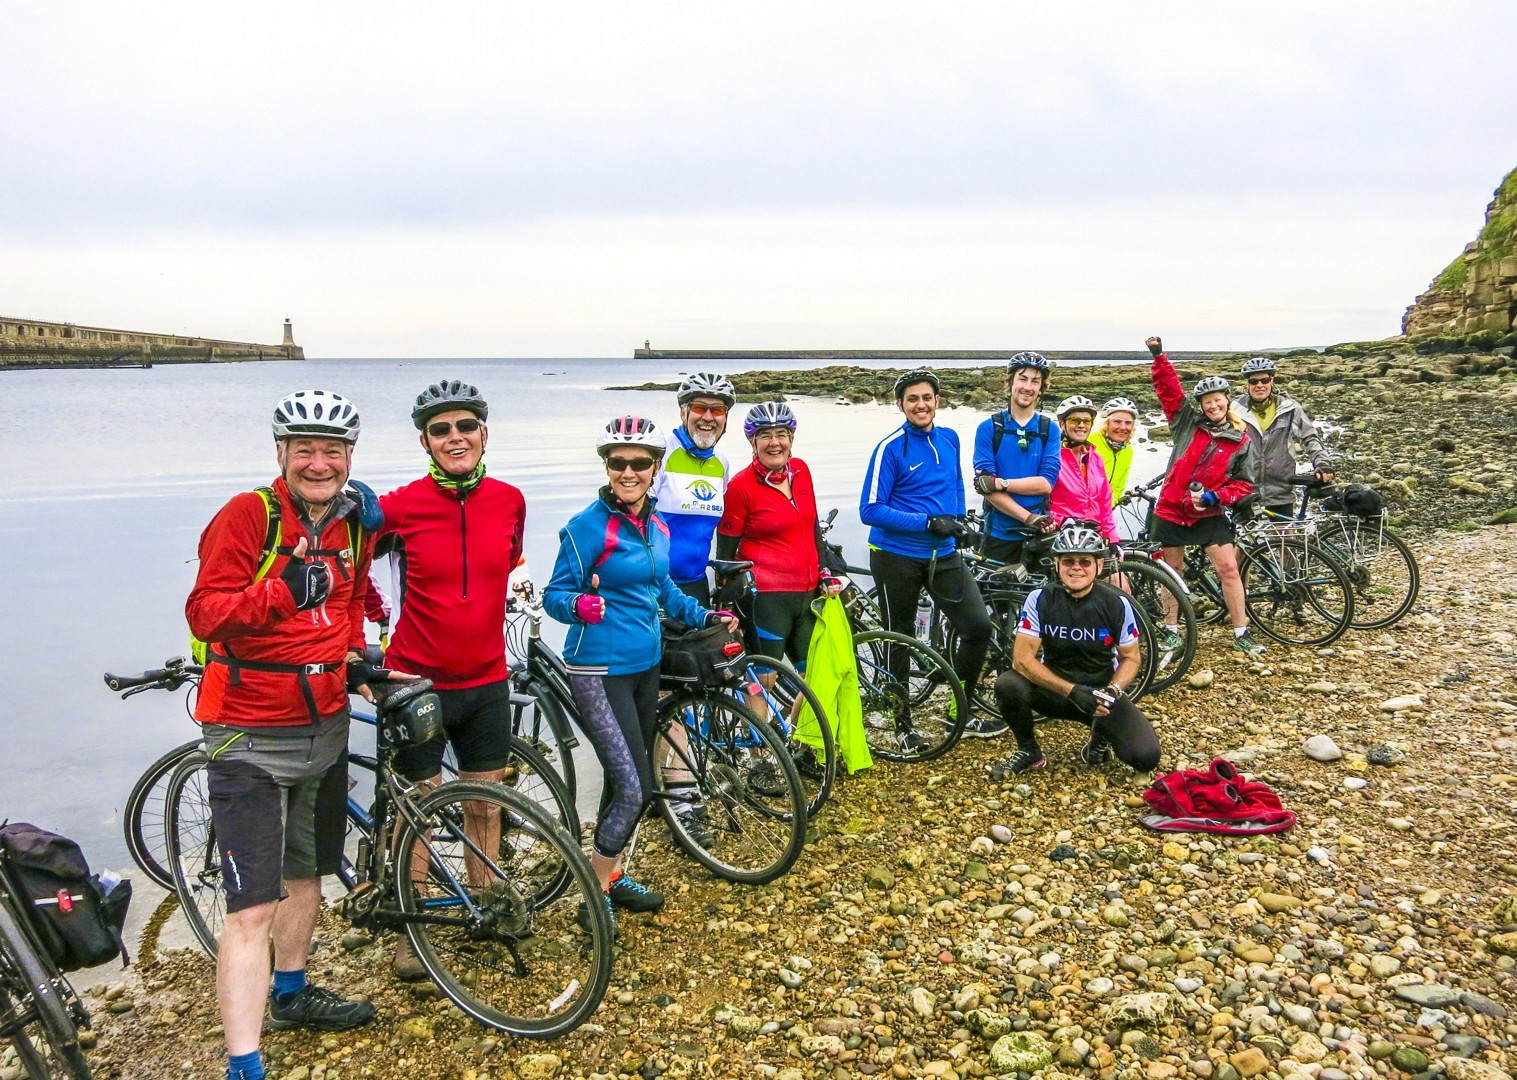 group-cycling-holiday-supported-coast-to-coast.jpg - UK - C2C - Coast to Coast - Supported Leisure Cycling Holiday - Family Cycling